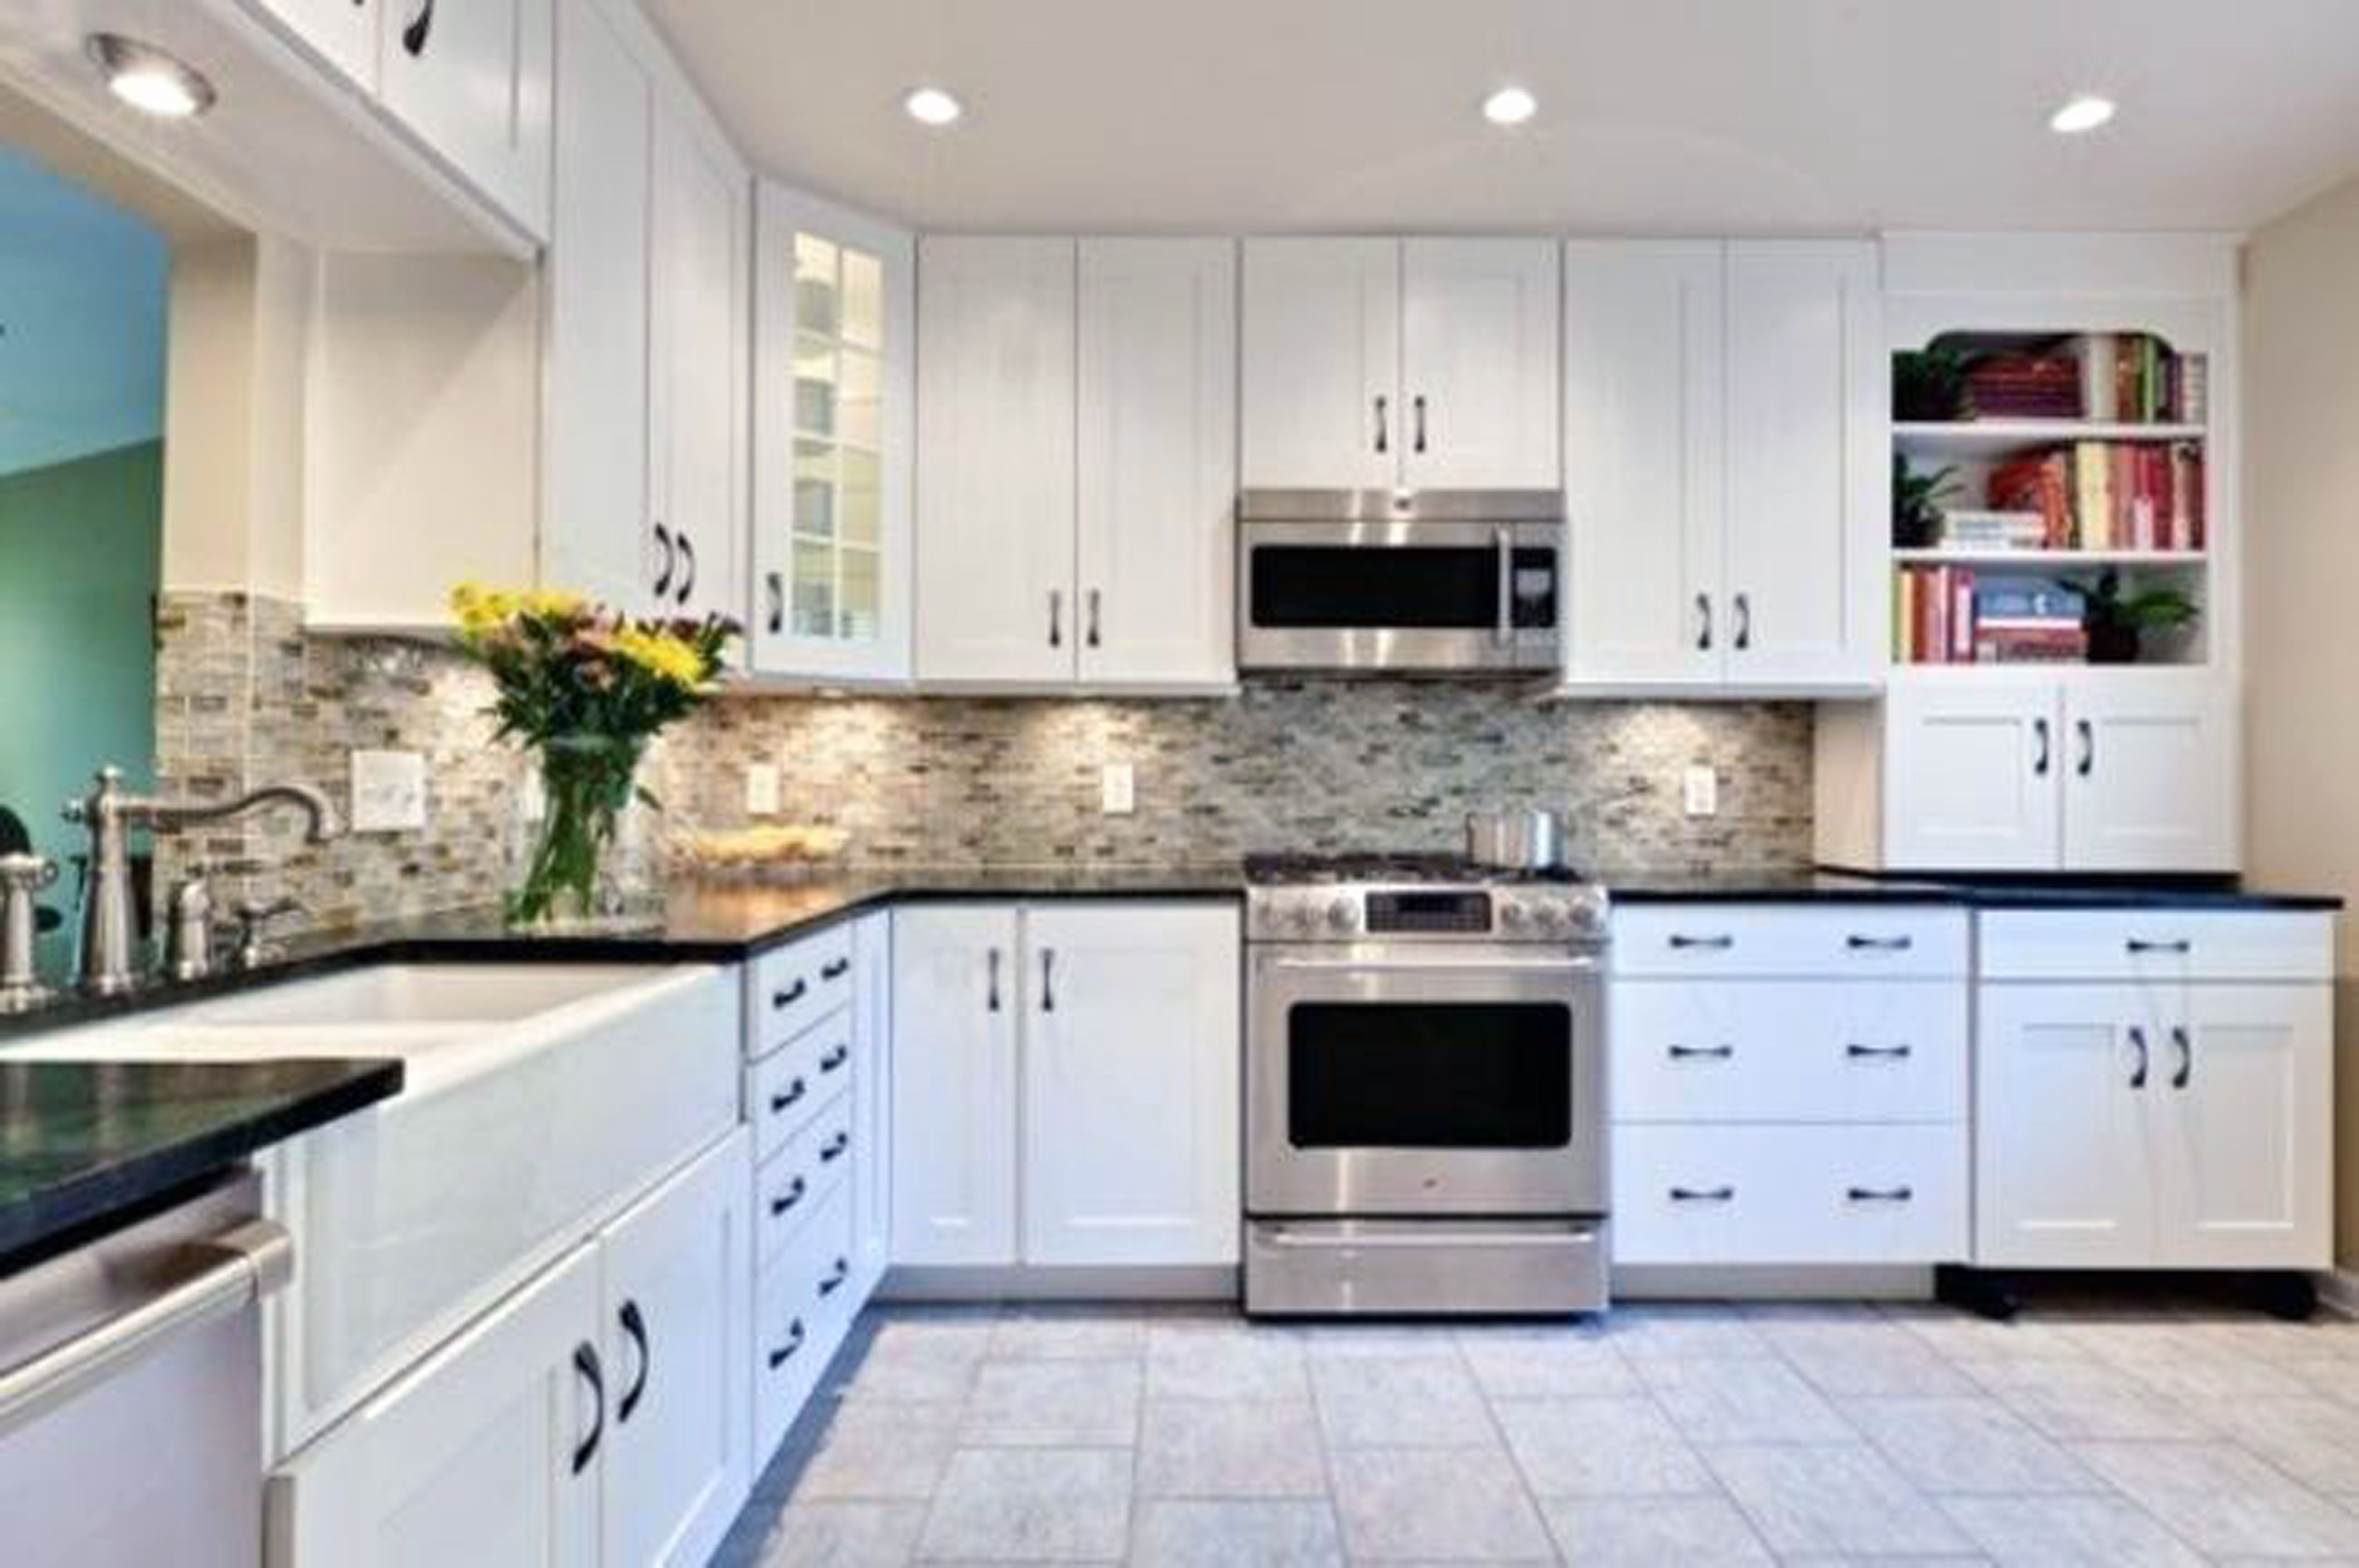 Pictures Of Kitchens With White Cabinets And Tile Floors